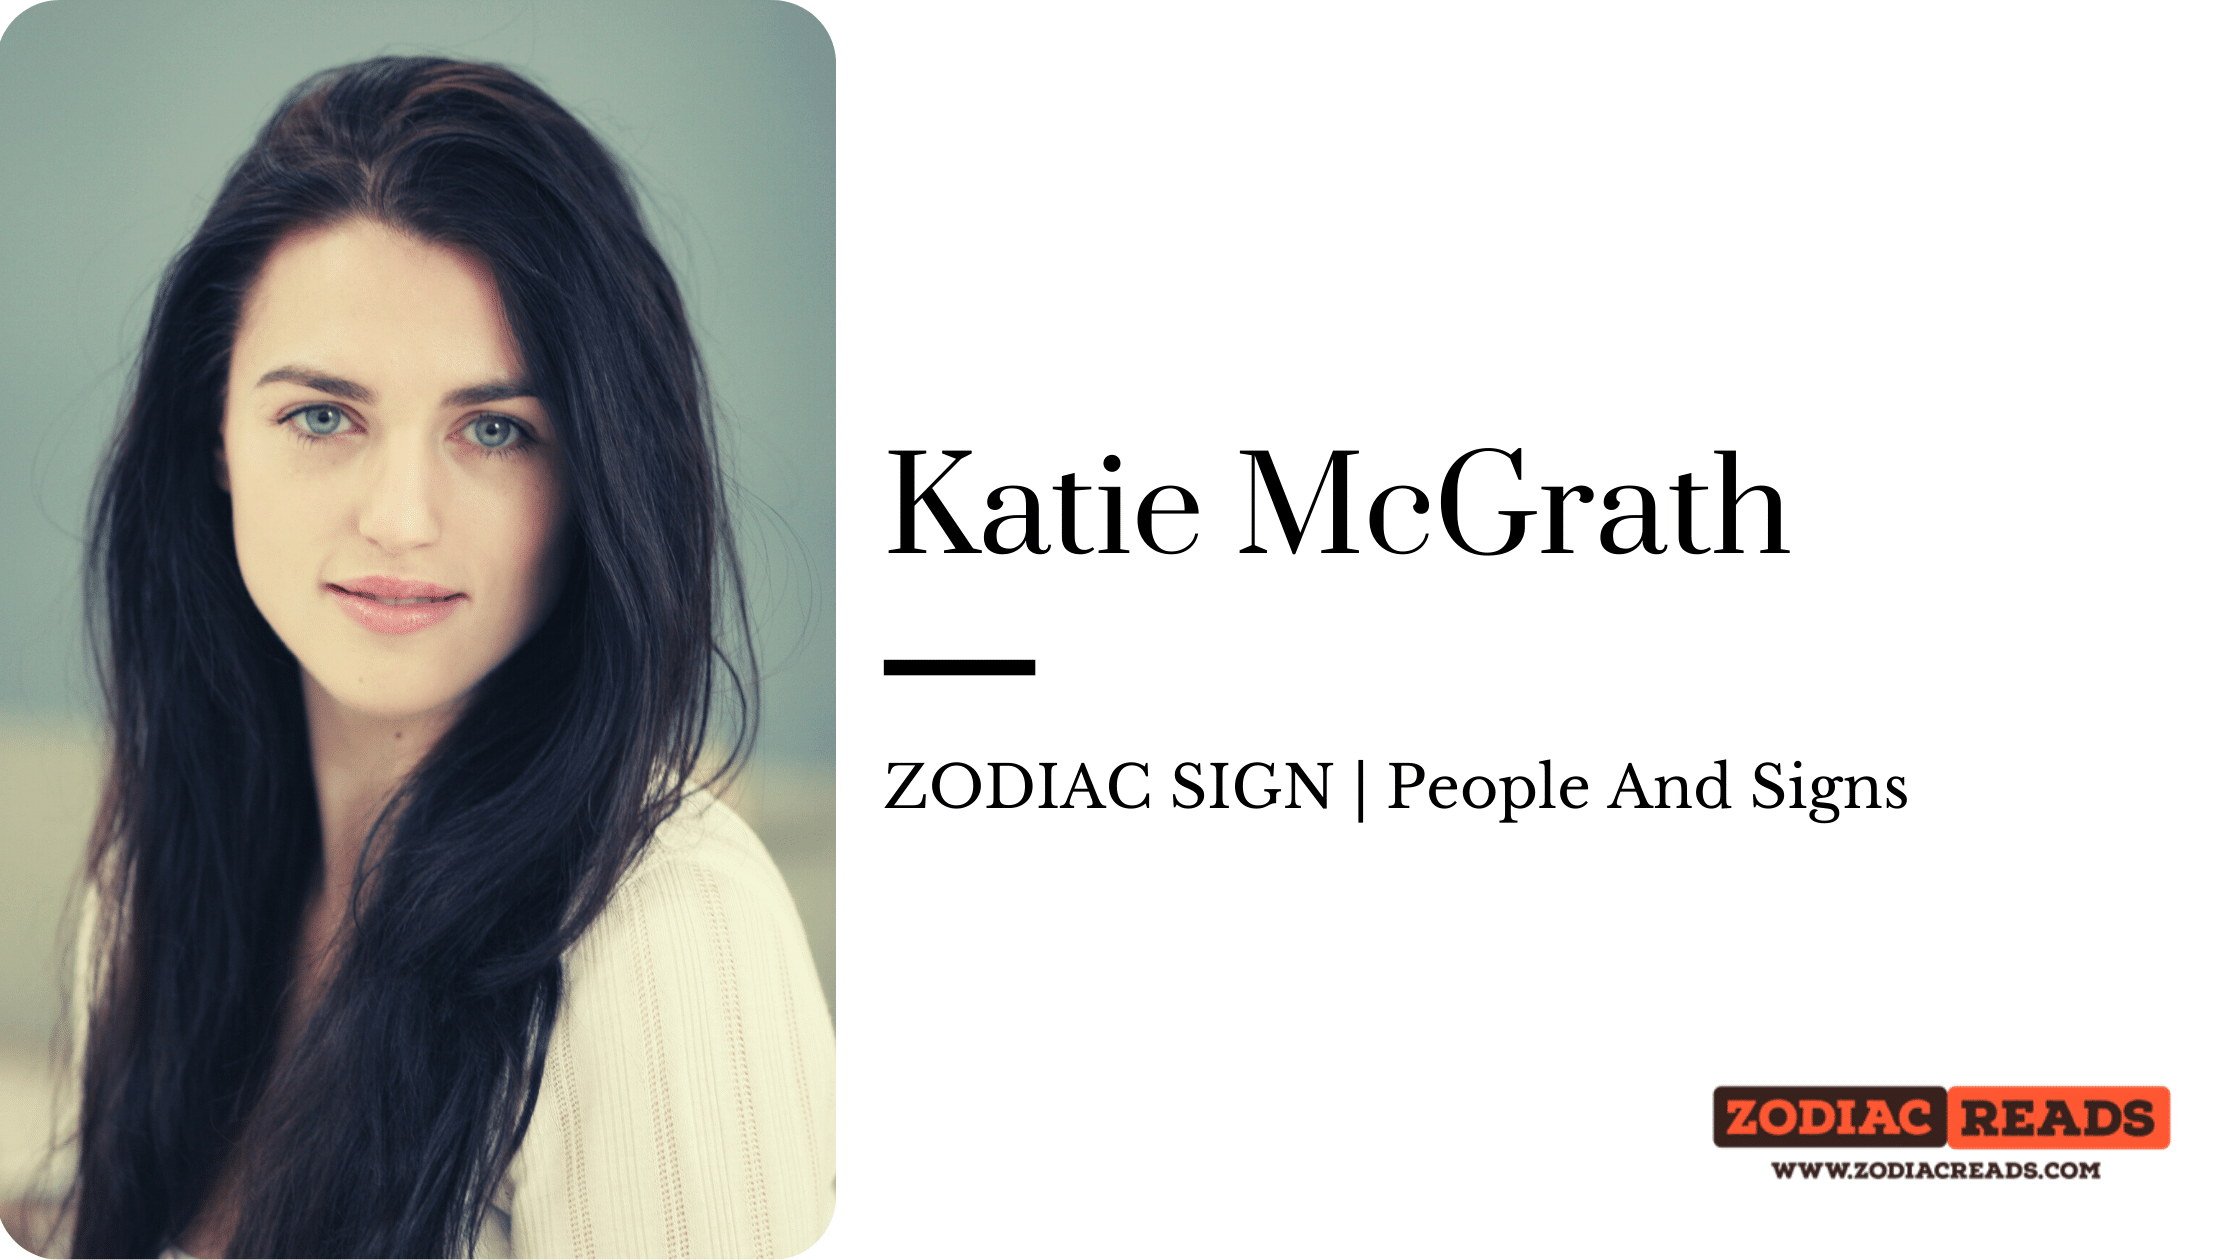 Katie McGrath zodiac